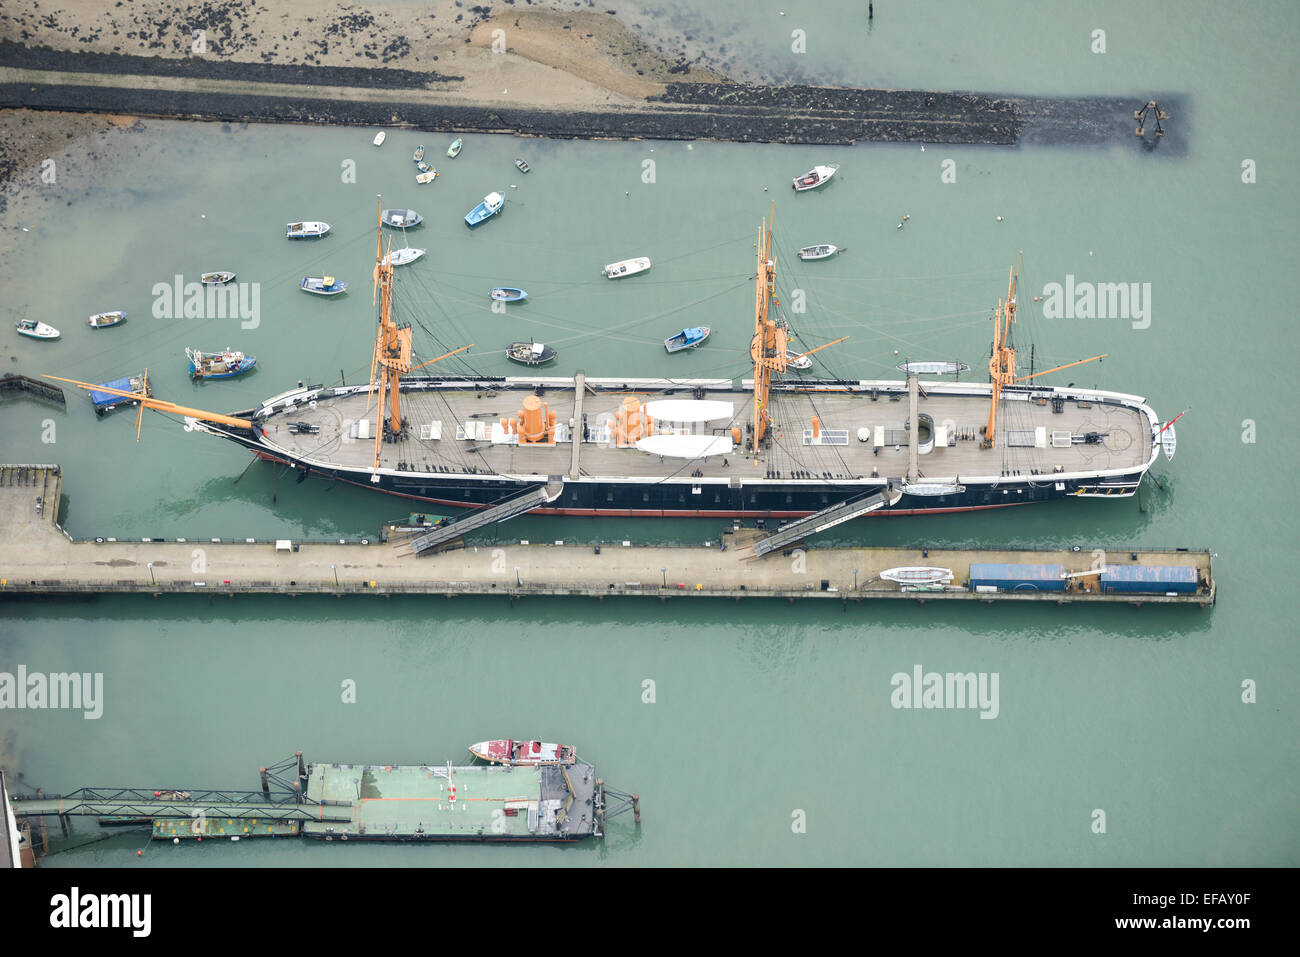 An aerial view of HMS Warrior, the first iron-hulled ship powered by steam and sail - Stock Image